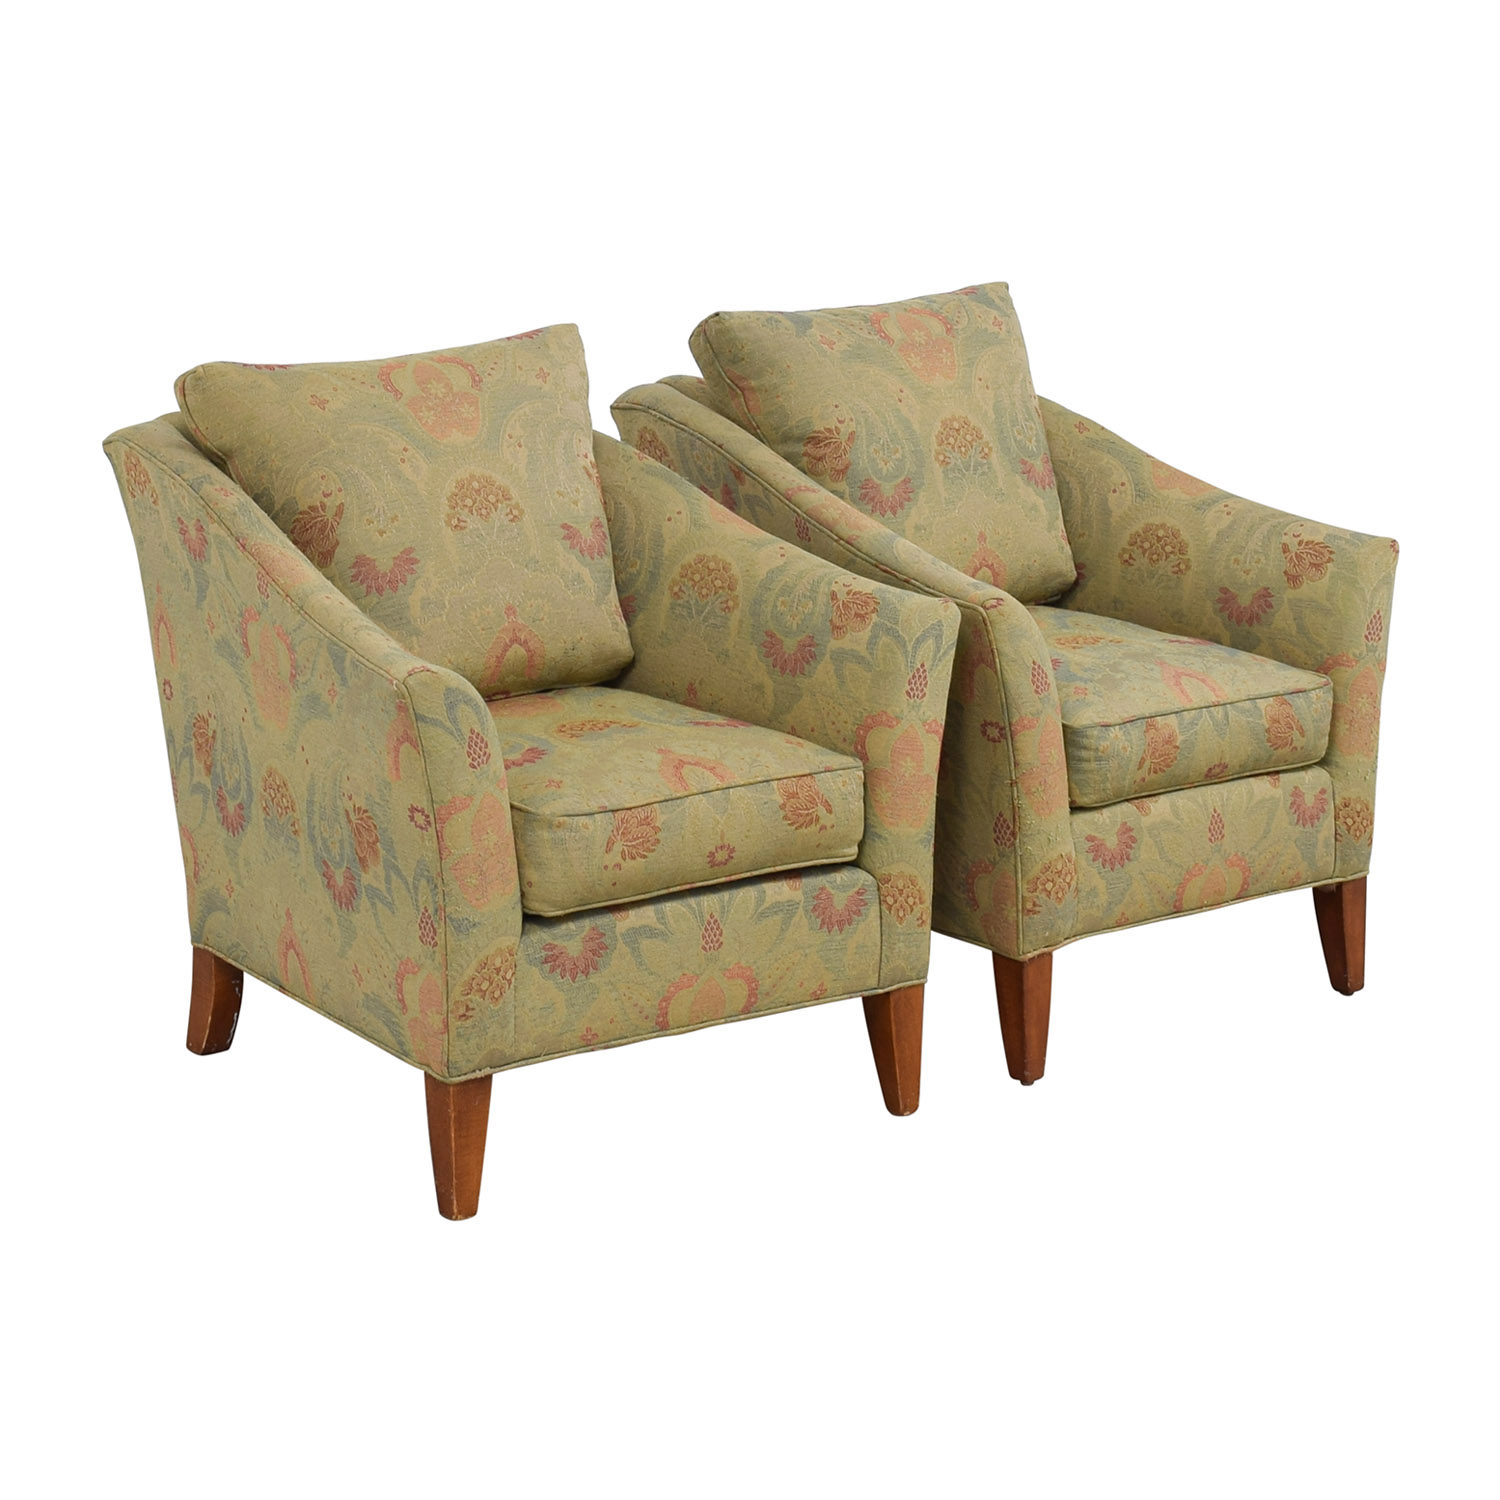 ethan allen recliners chairs tripod chair with back 90 off gibson floral